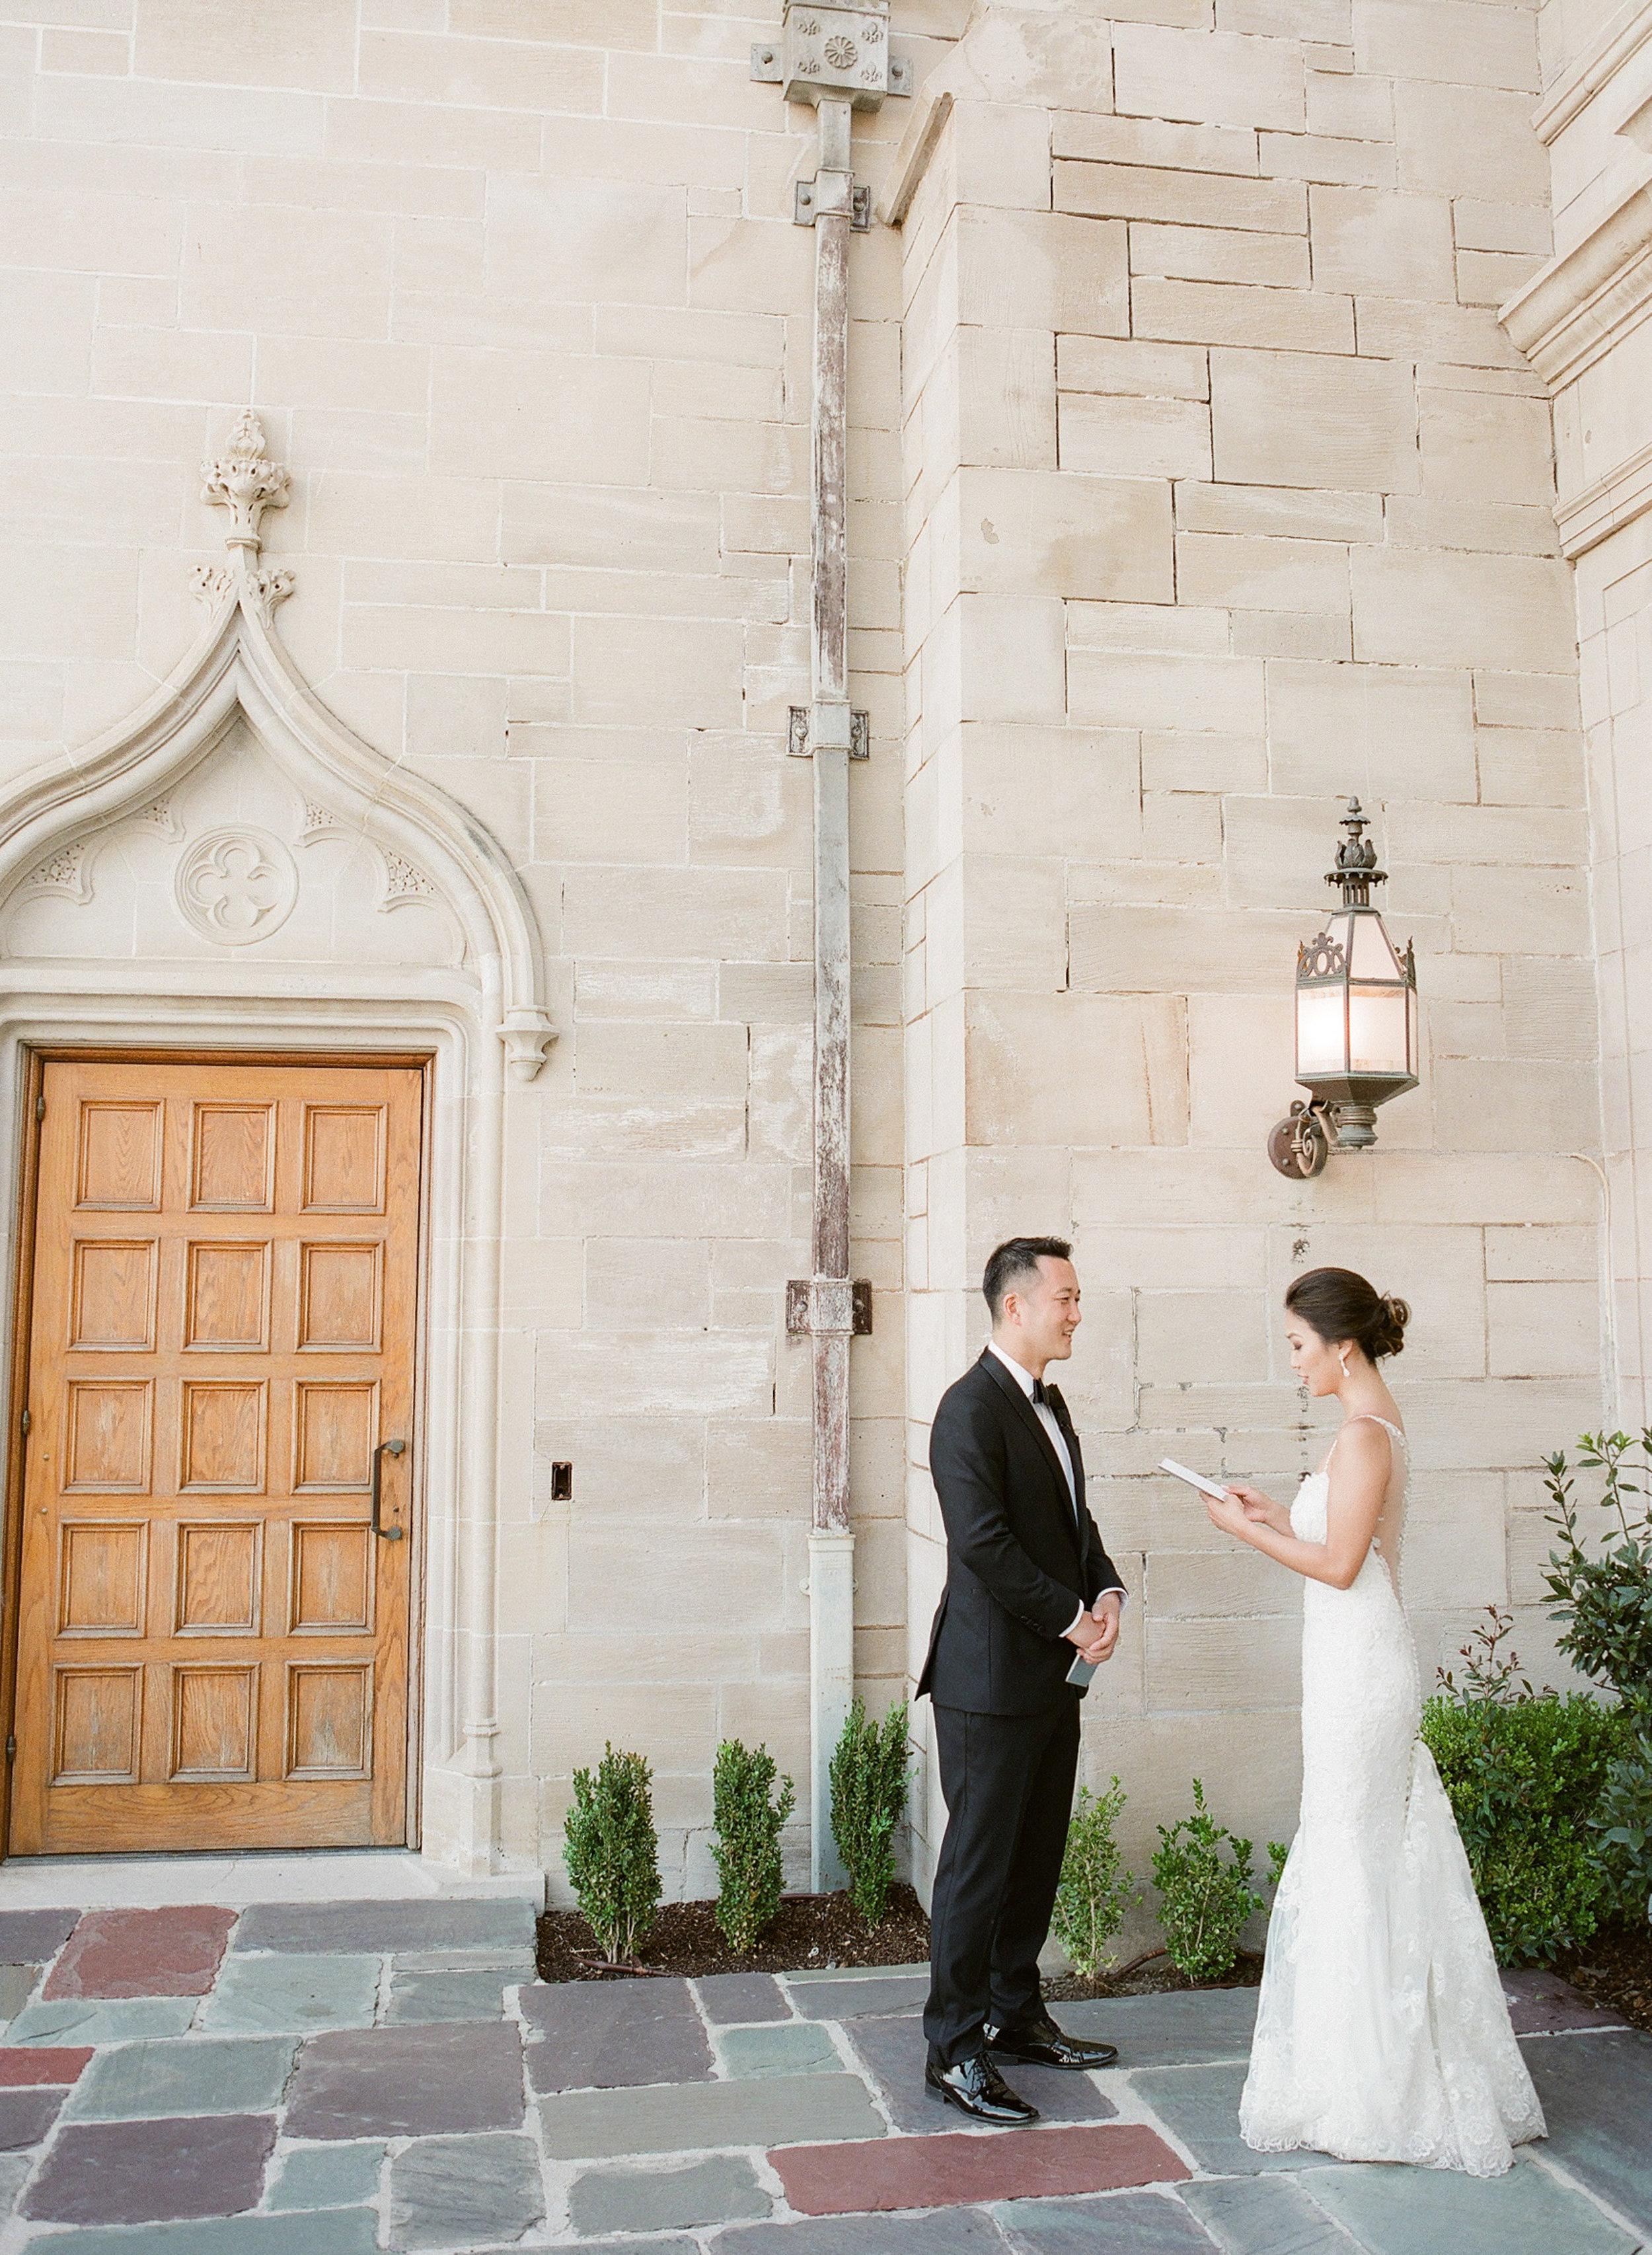 Greystone-Mansion-Wedding-Kristina-Adams-871.jpg